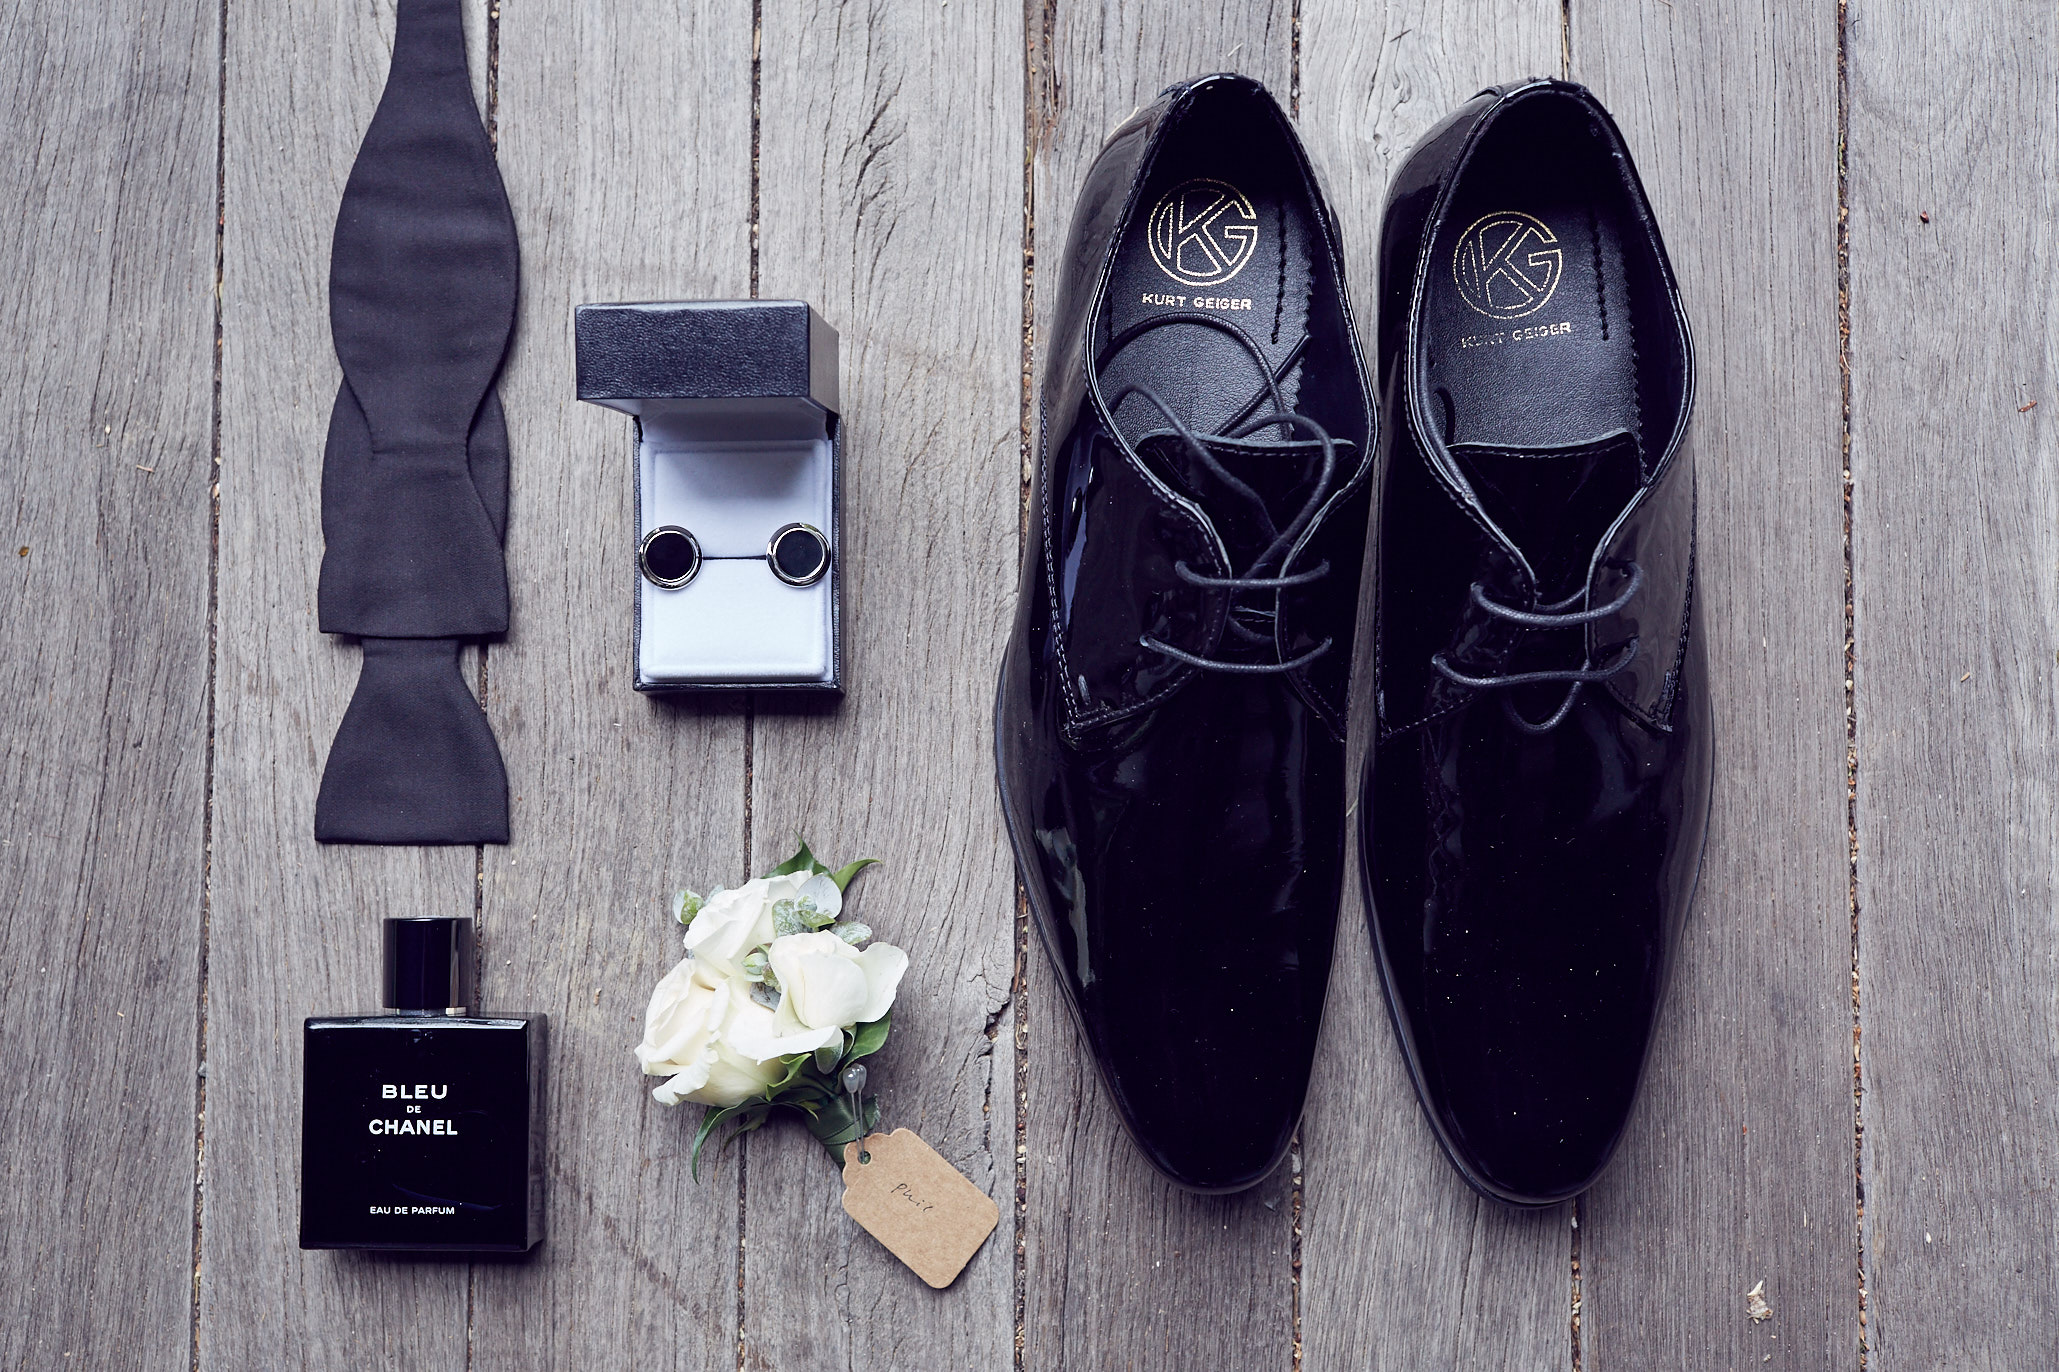 Kurt Geiger Shoes, Chanel Bleu cologne, triple rose bud, white boutonniere, Montblanc cuff links & hand tied bow tie.